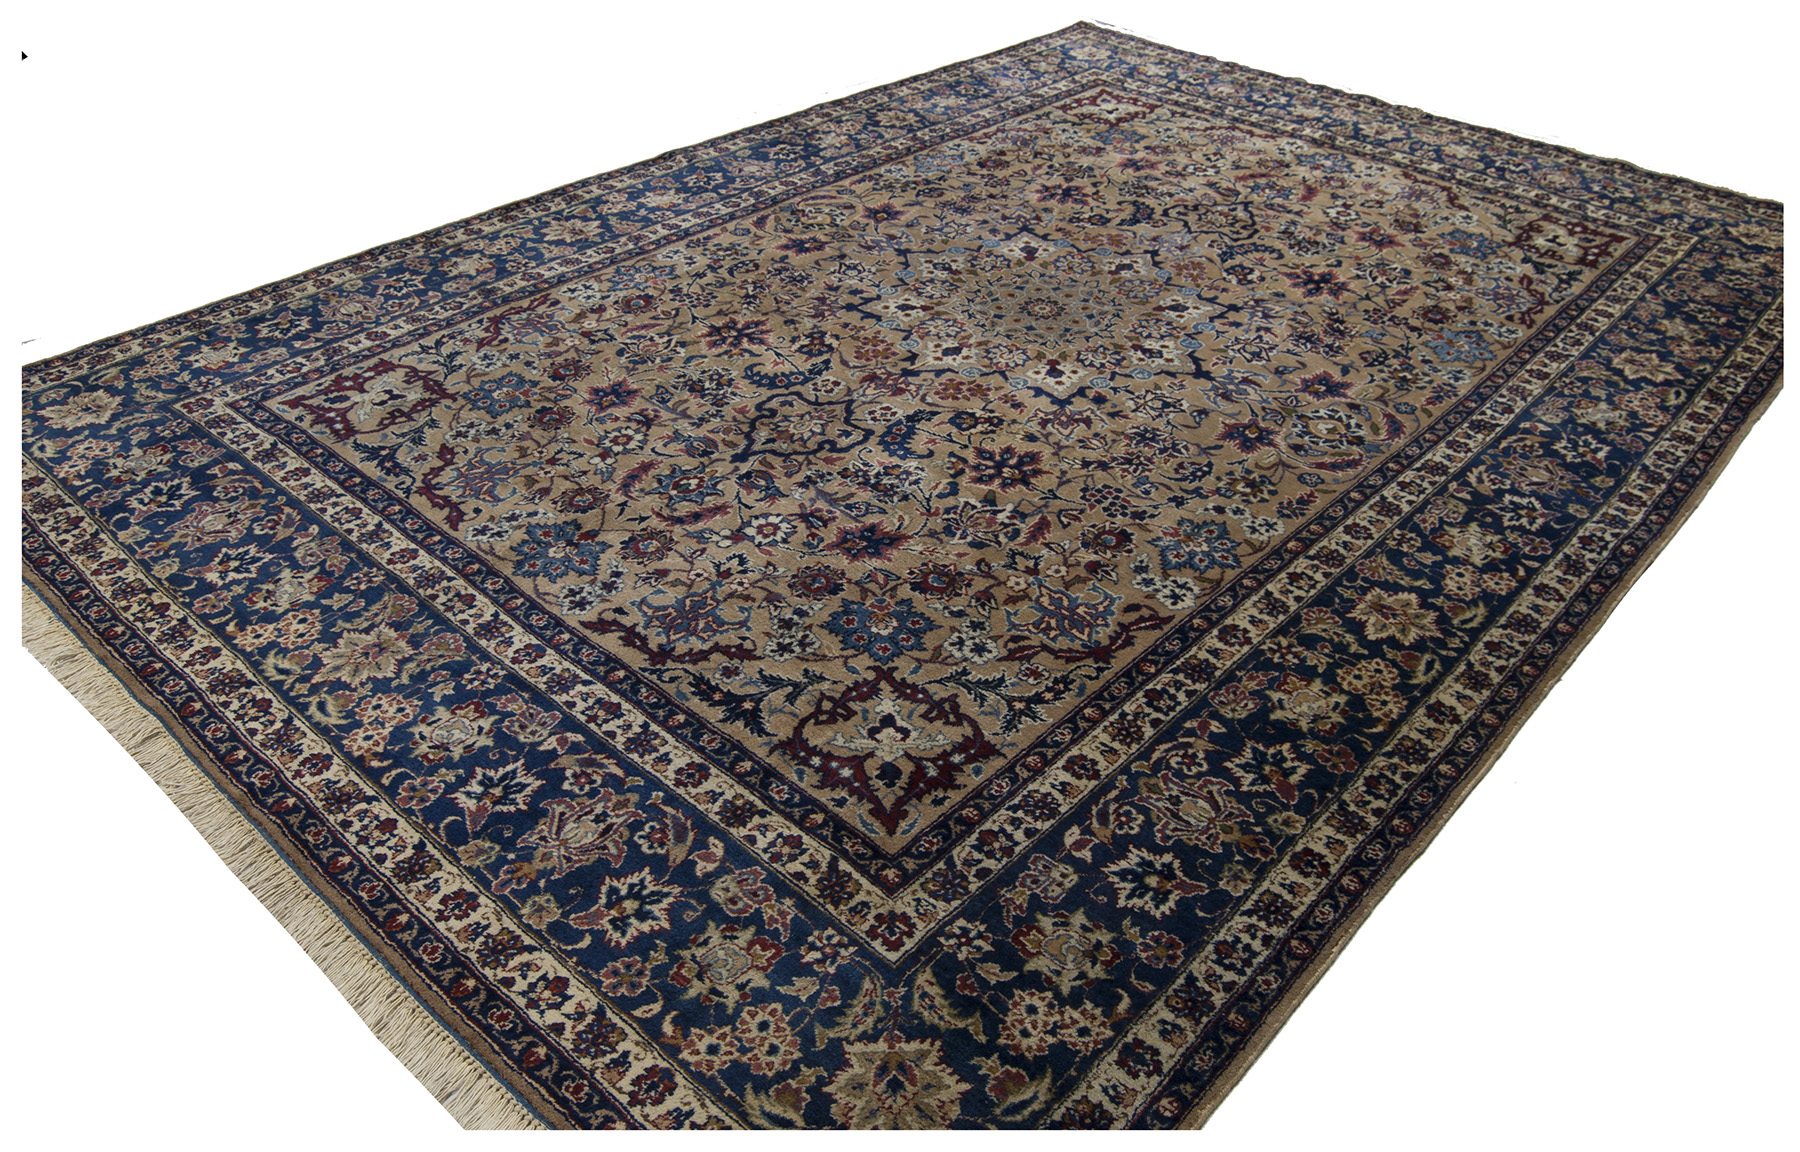 360x253 cm original hand made carpet tapis teppich alfombra rugs ebay. Black Bedroom Furniture Sets. Home Design Ideas